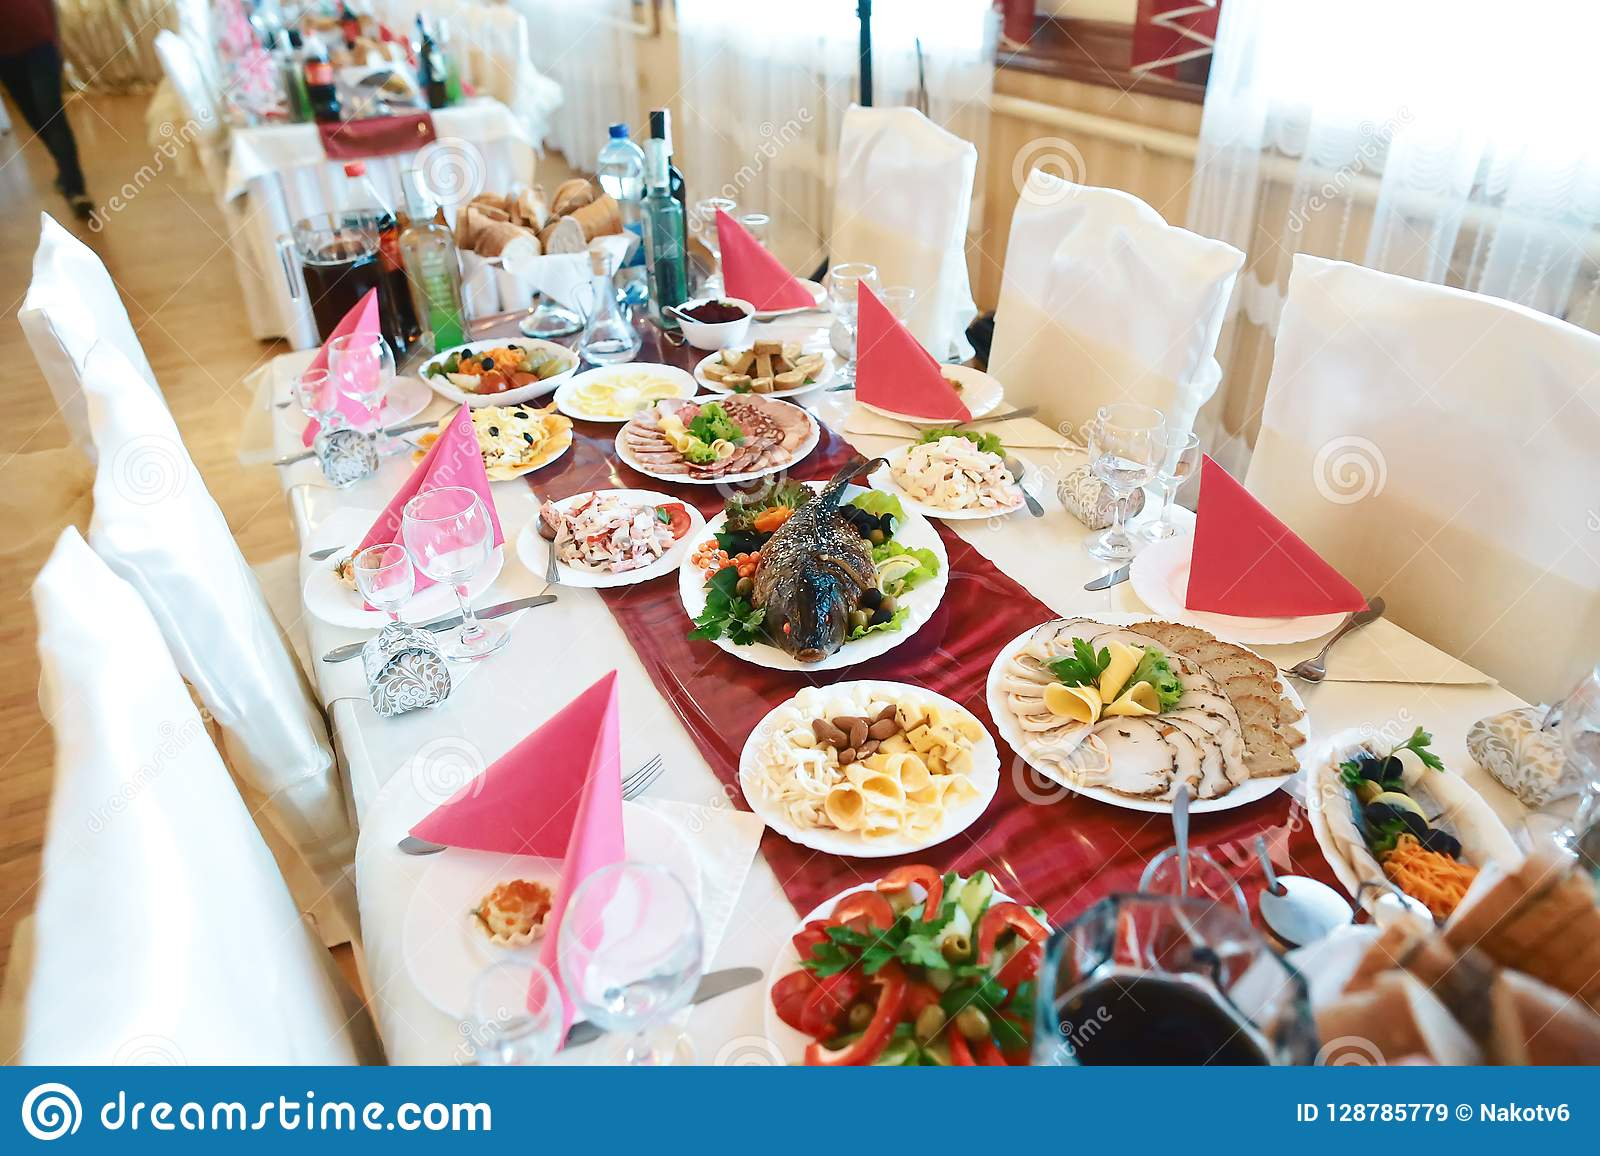 9d7df24e7940 Catering Service. Restaurant Table With Food On The Table. Plates Of ...